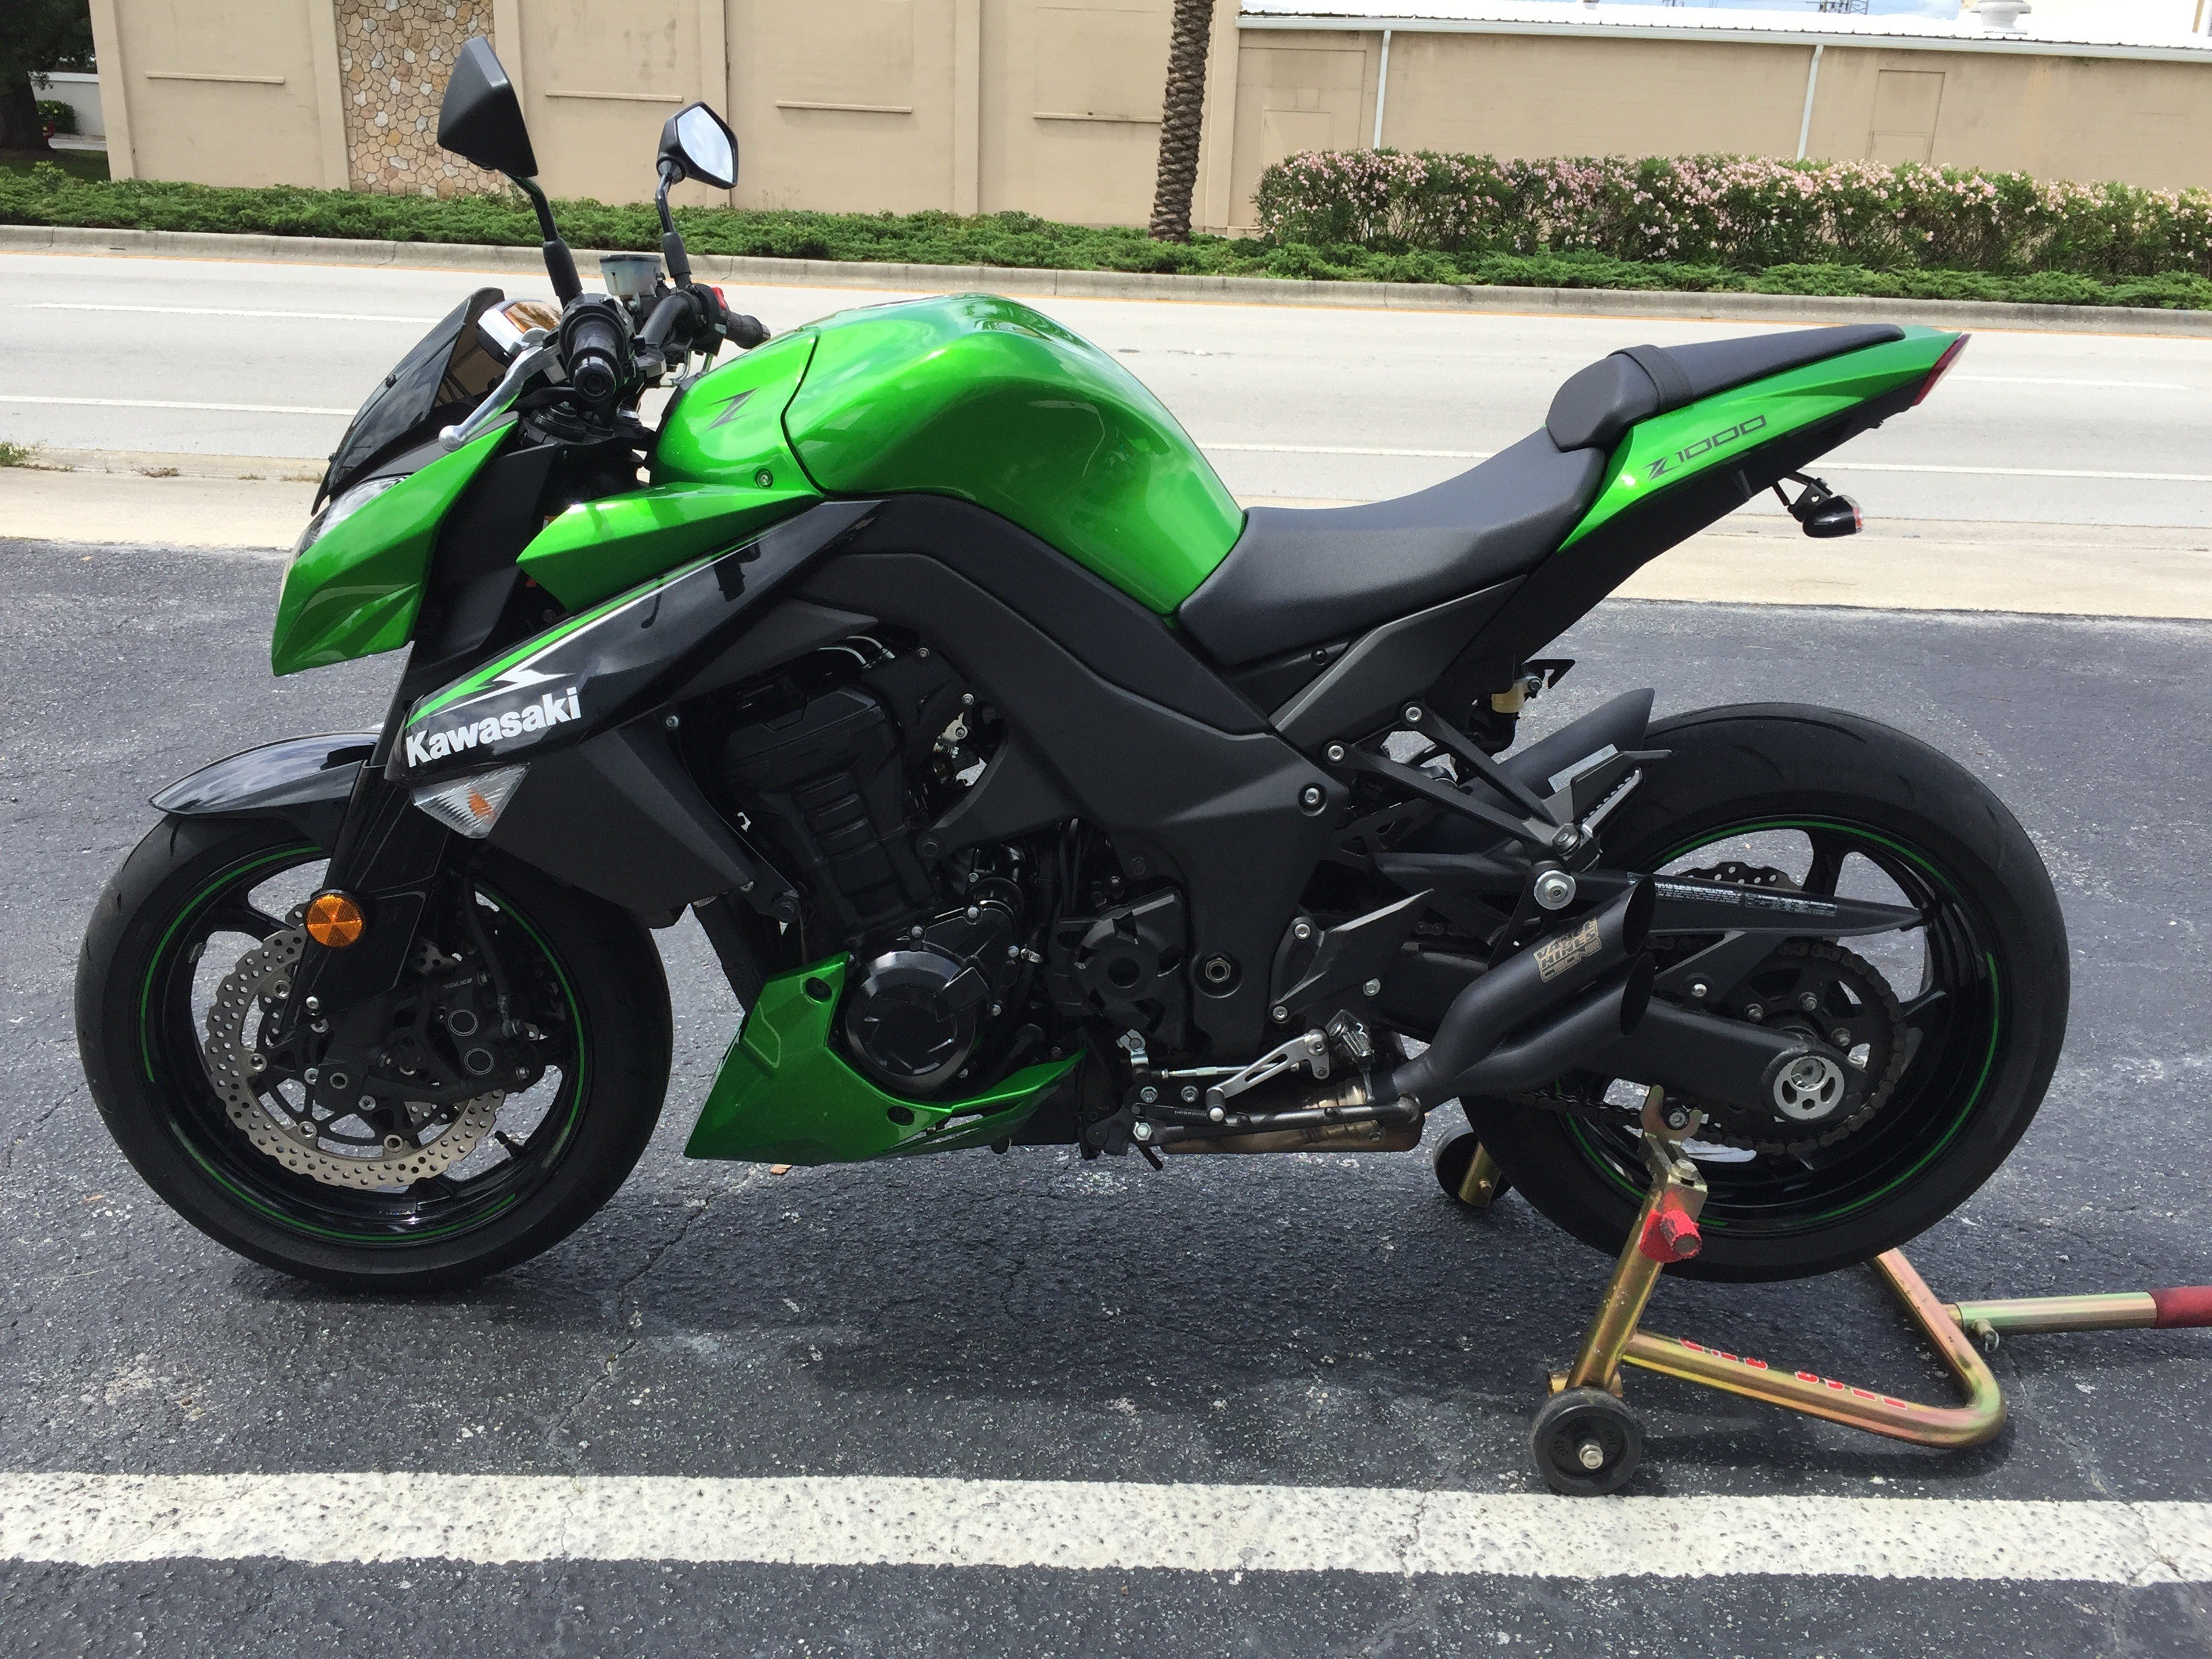 2013 Kawasaki Z1000 in Cocoa, Florida - Photo 7